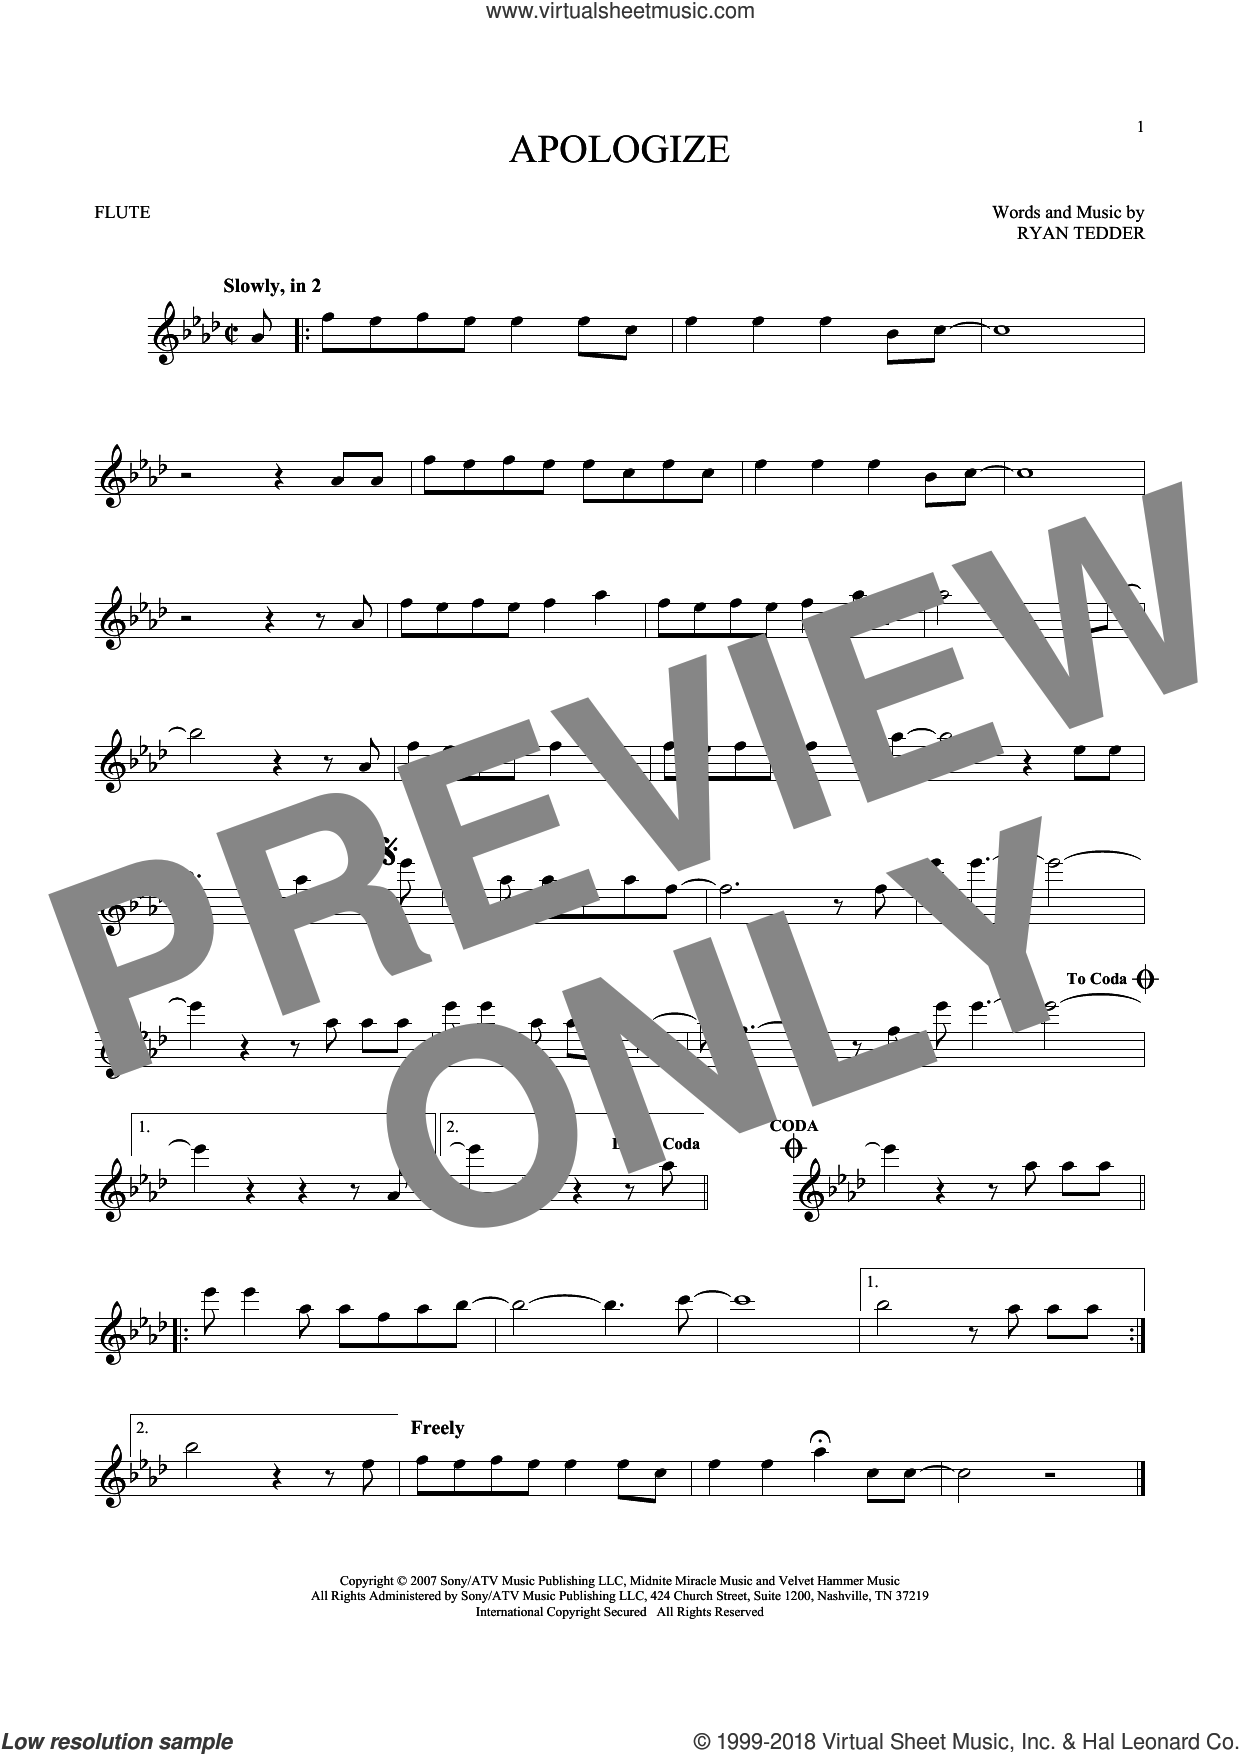 Apologize sheet music for flute solo by Timbaland featuring OneRepublic and Ryan Tedder, intermediate skill level